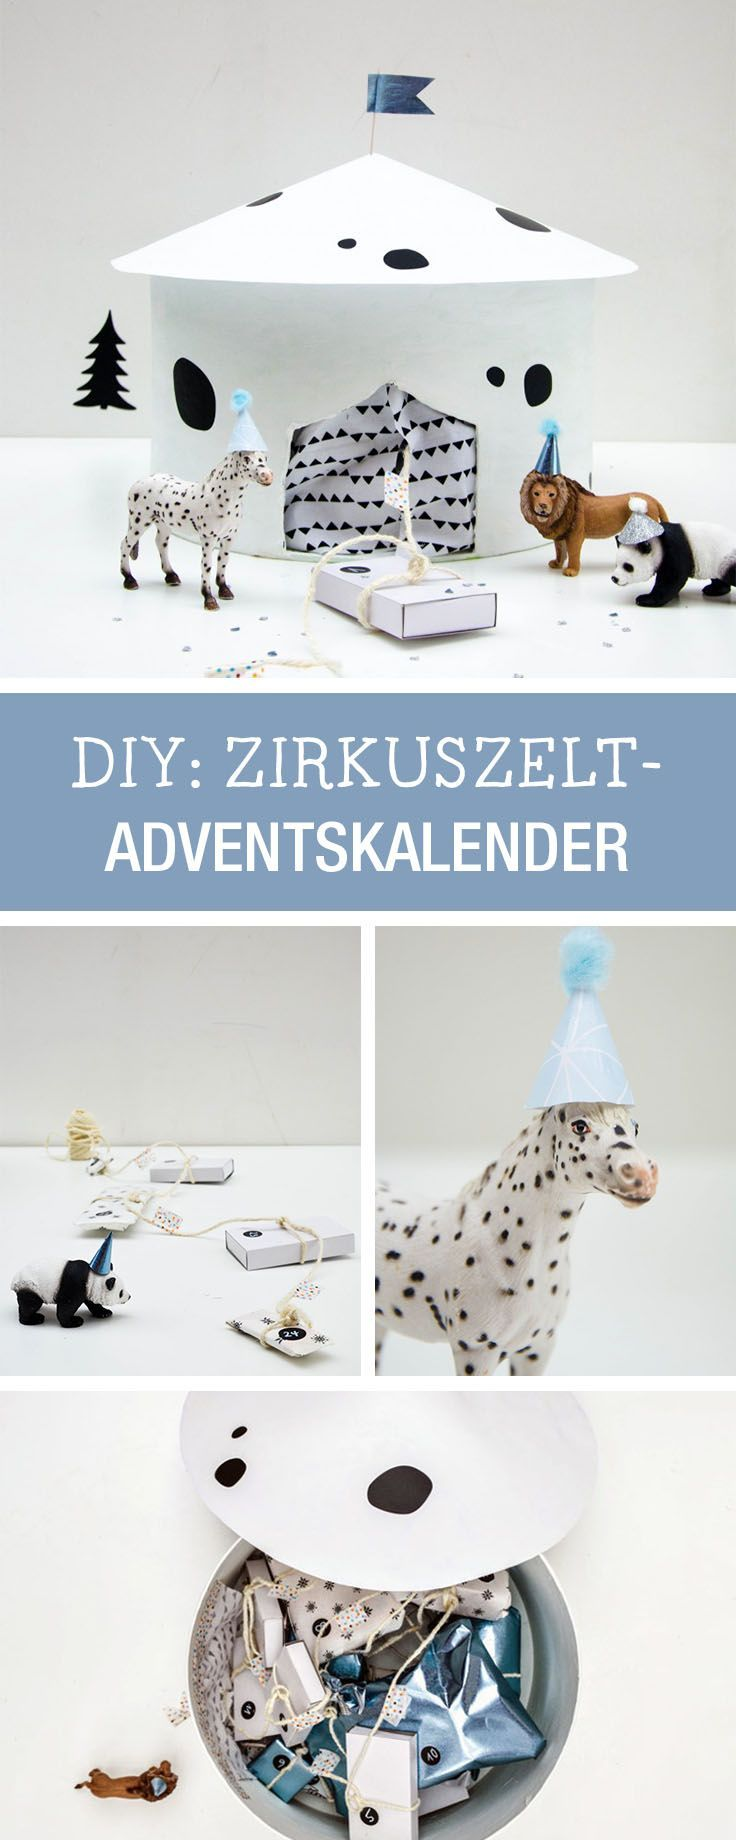 Adventskalender in Form eines Zirkuszelt für Kinder basteln / circus advents calendar for kids via http://DaWanda.com